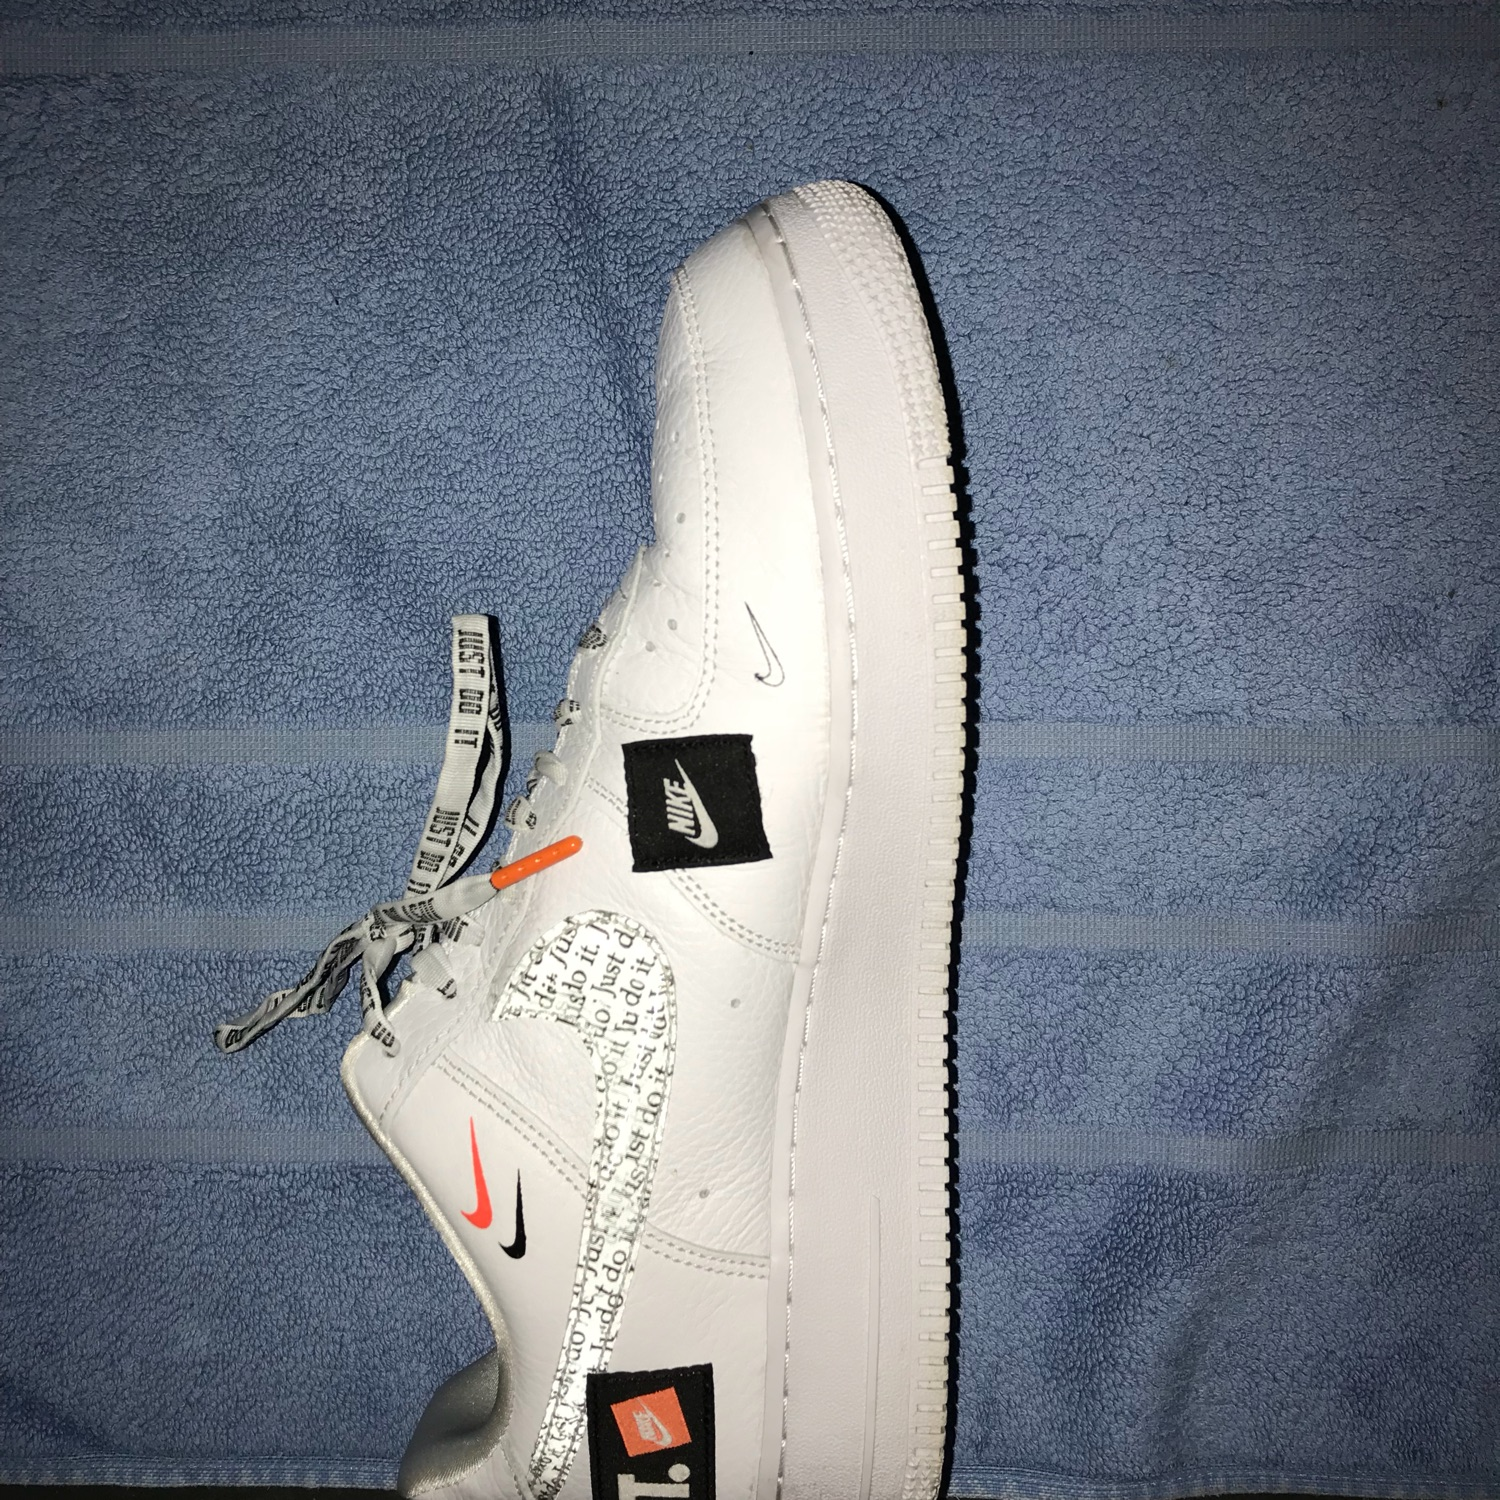 2cc66611 Nike Air Force 1 Jdi (Going On Stockx For 170$)